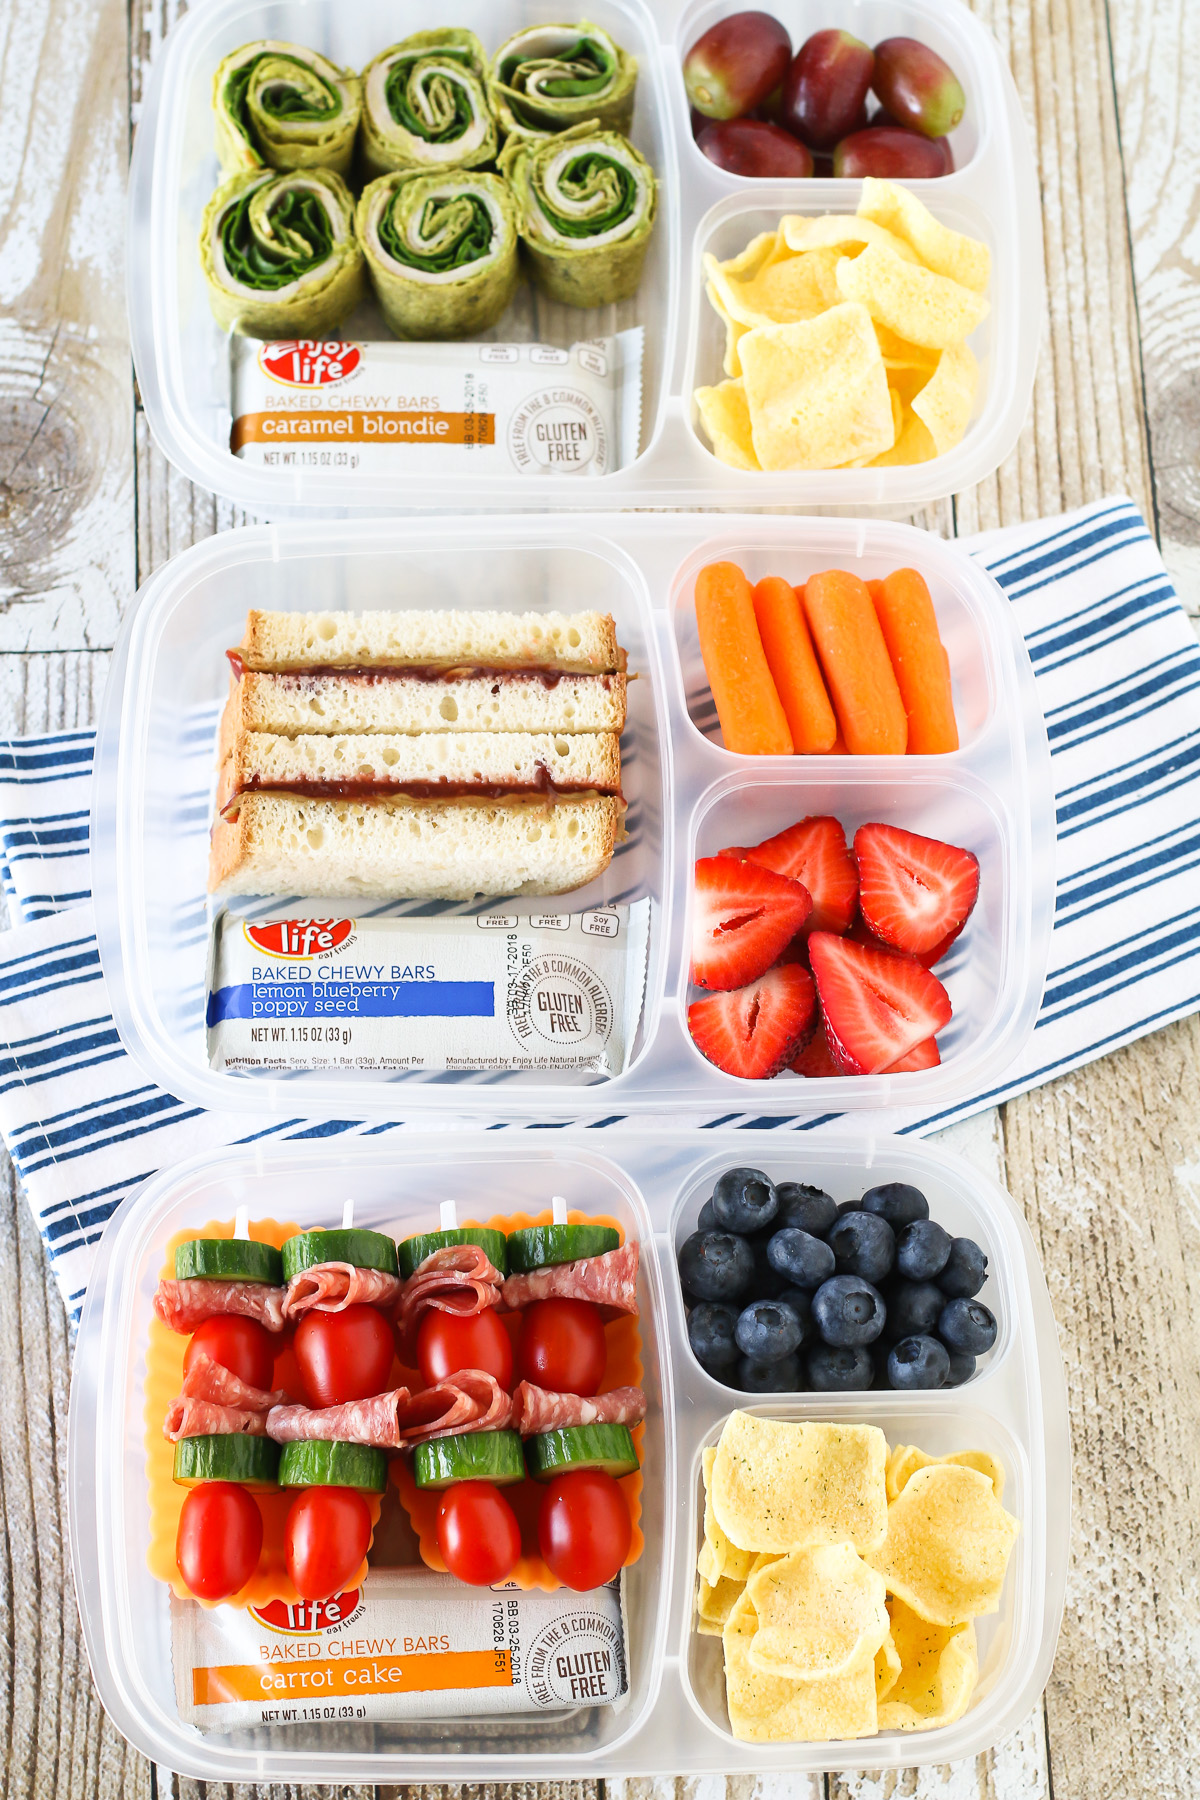 Easy Allergen Free School Lunches. 3 allergen free lunch ideas, featuring Enjoy Life Baked Chewy Bars!